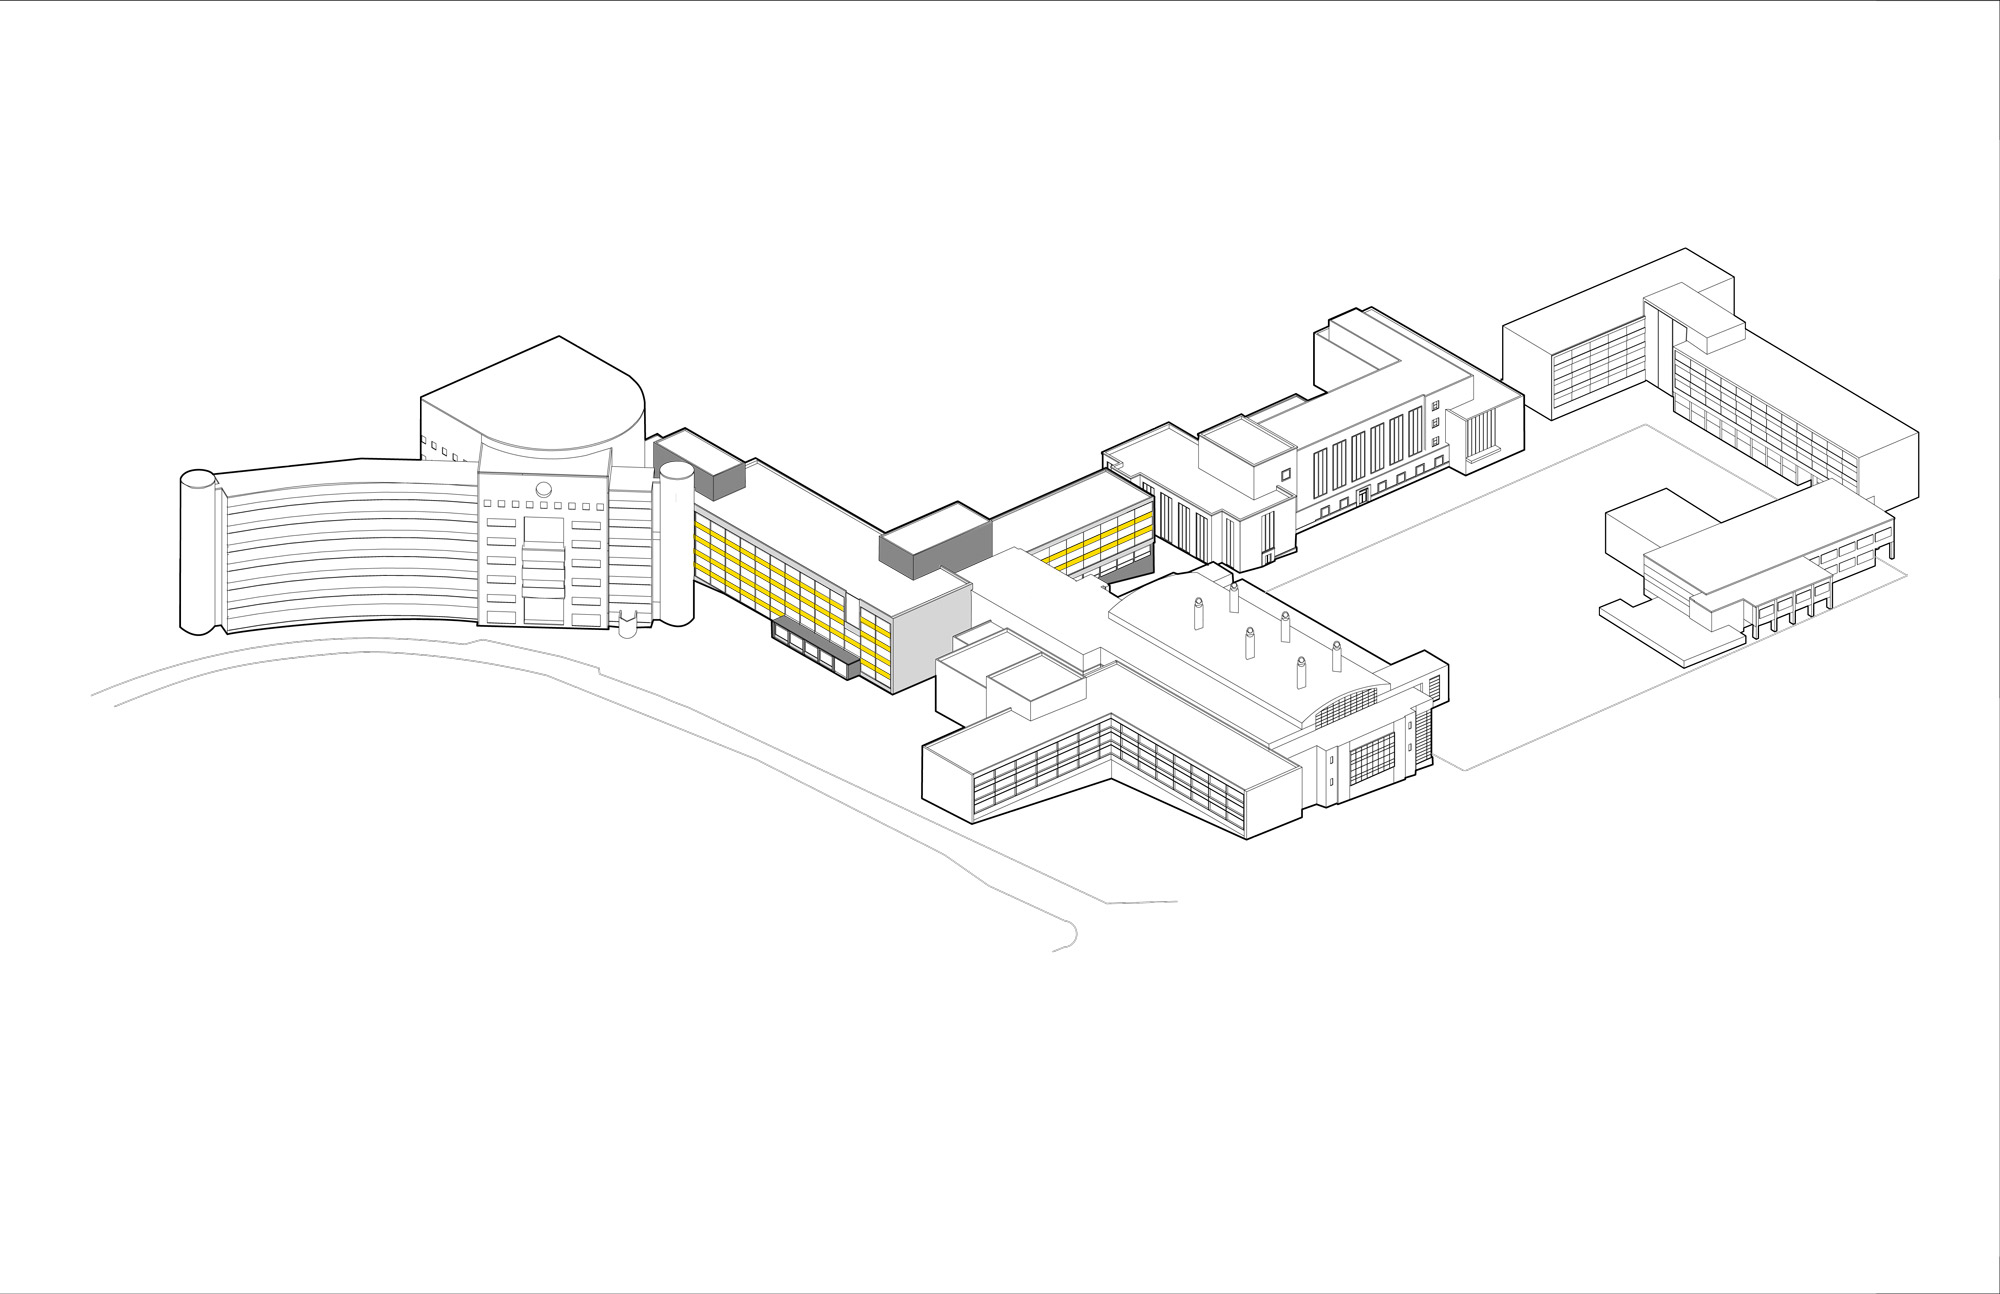 concept © LTL Architects, Perkins+Will